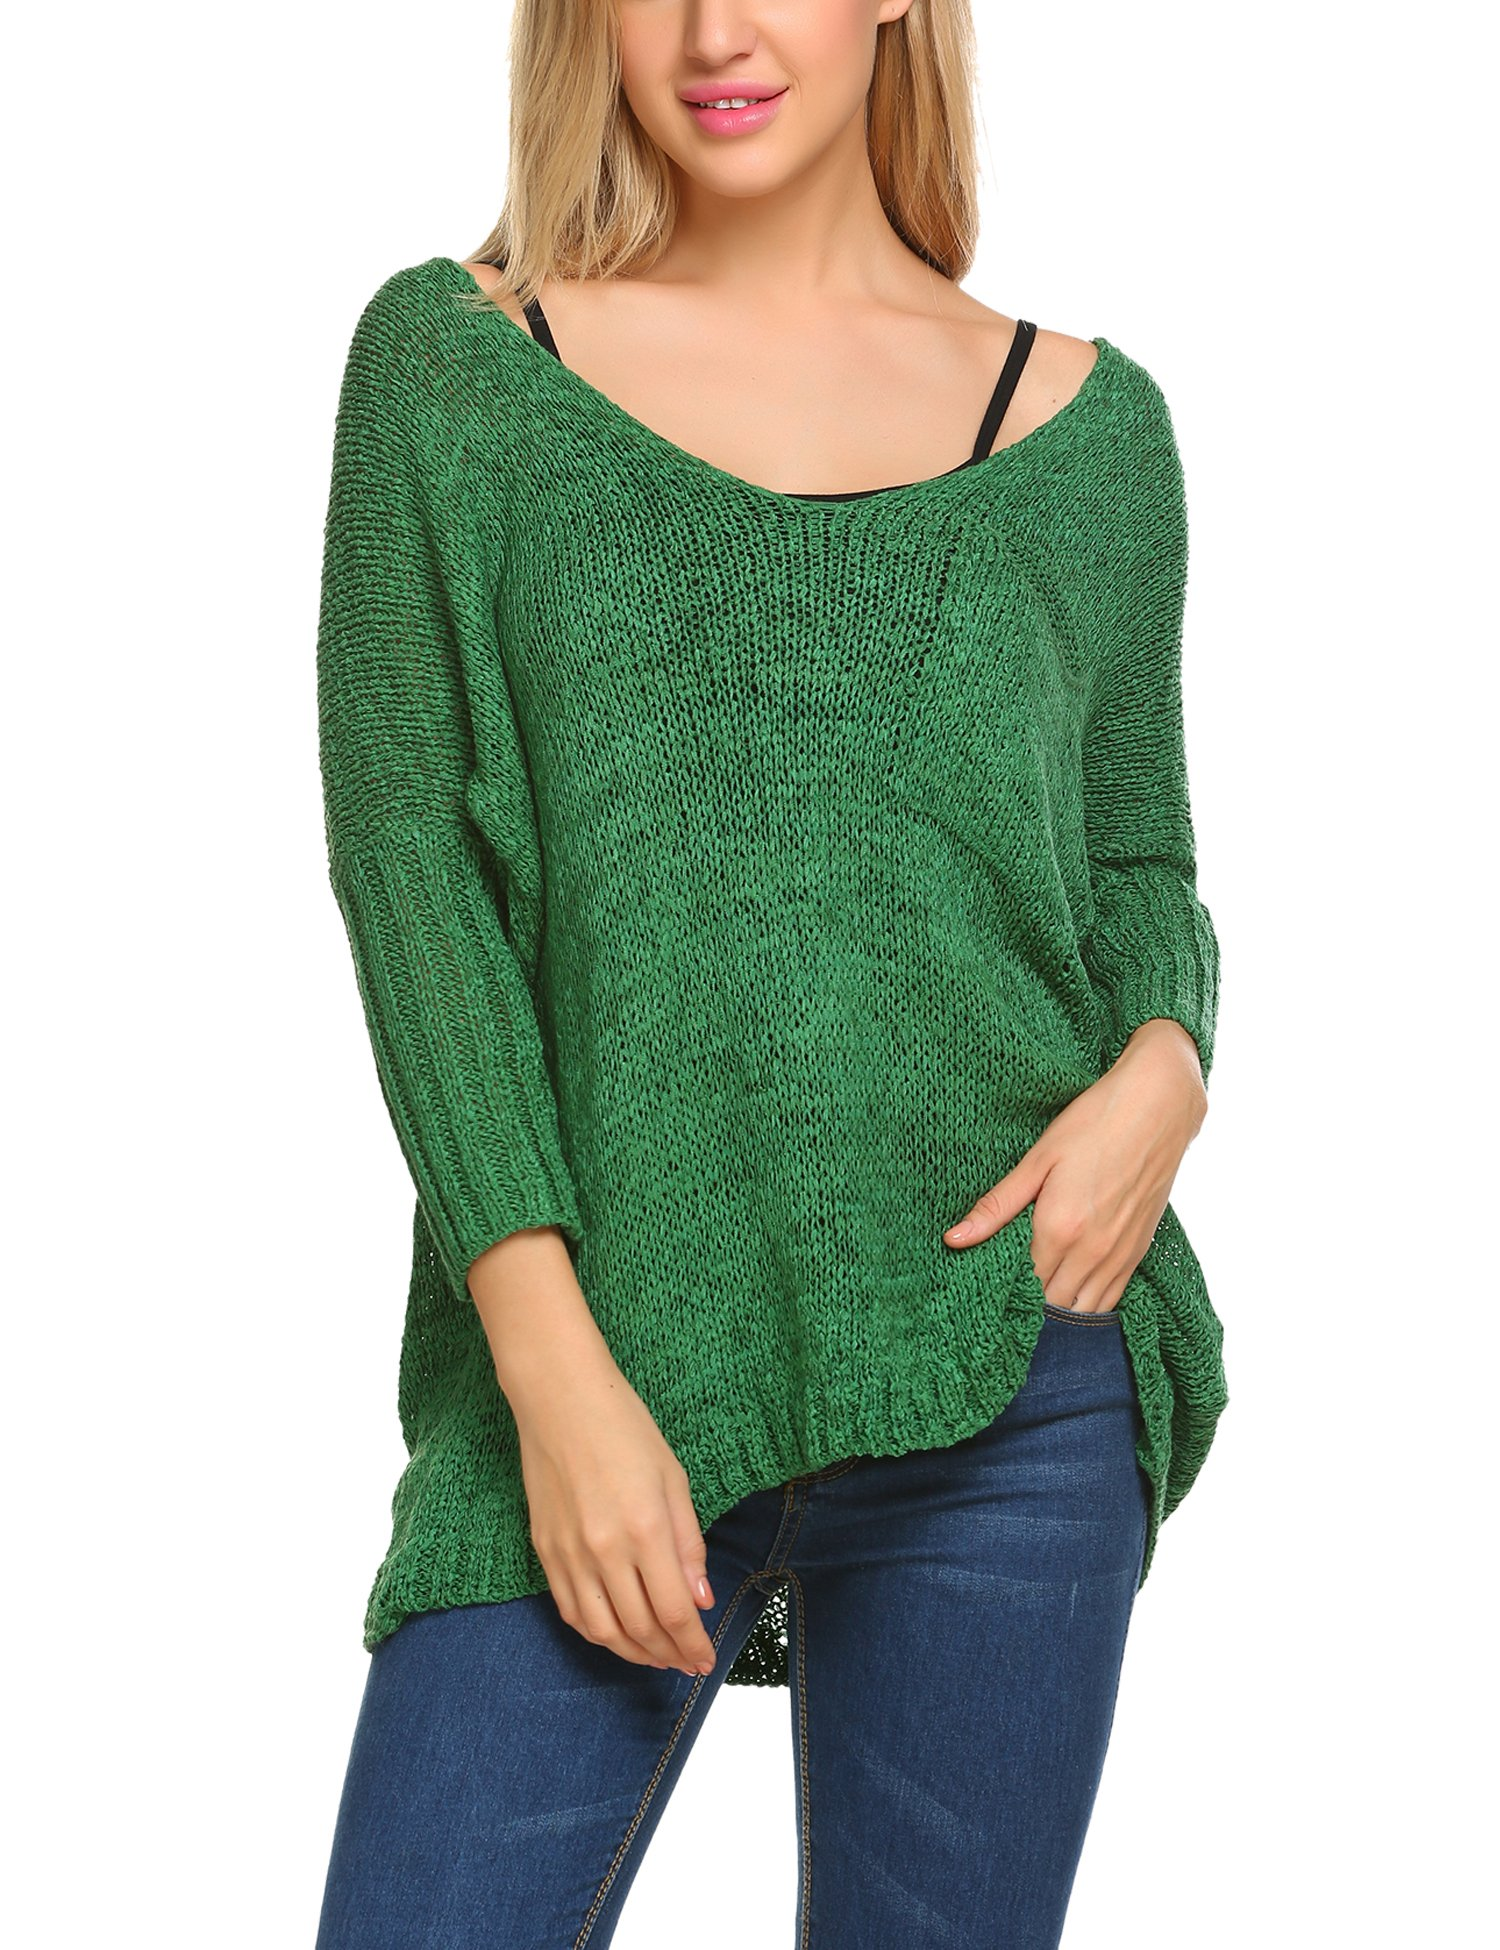 UNibelle Women Casual Loose V Neck Knit Jumper Sweater Pullover Tops